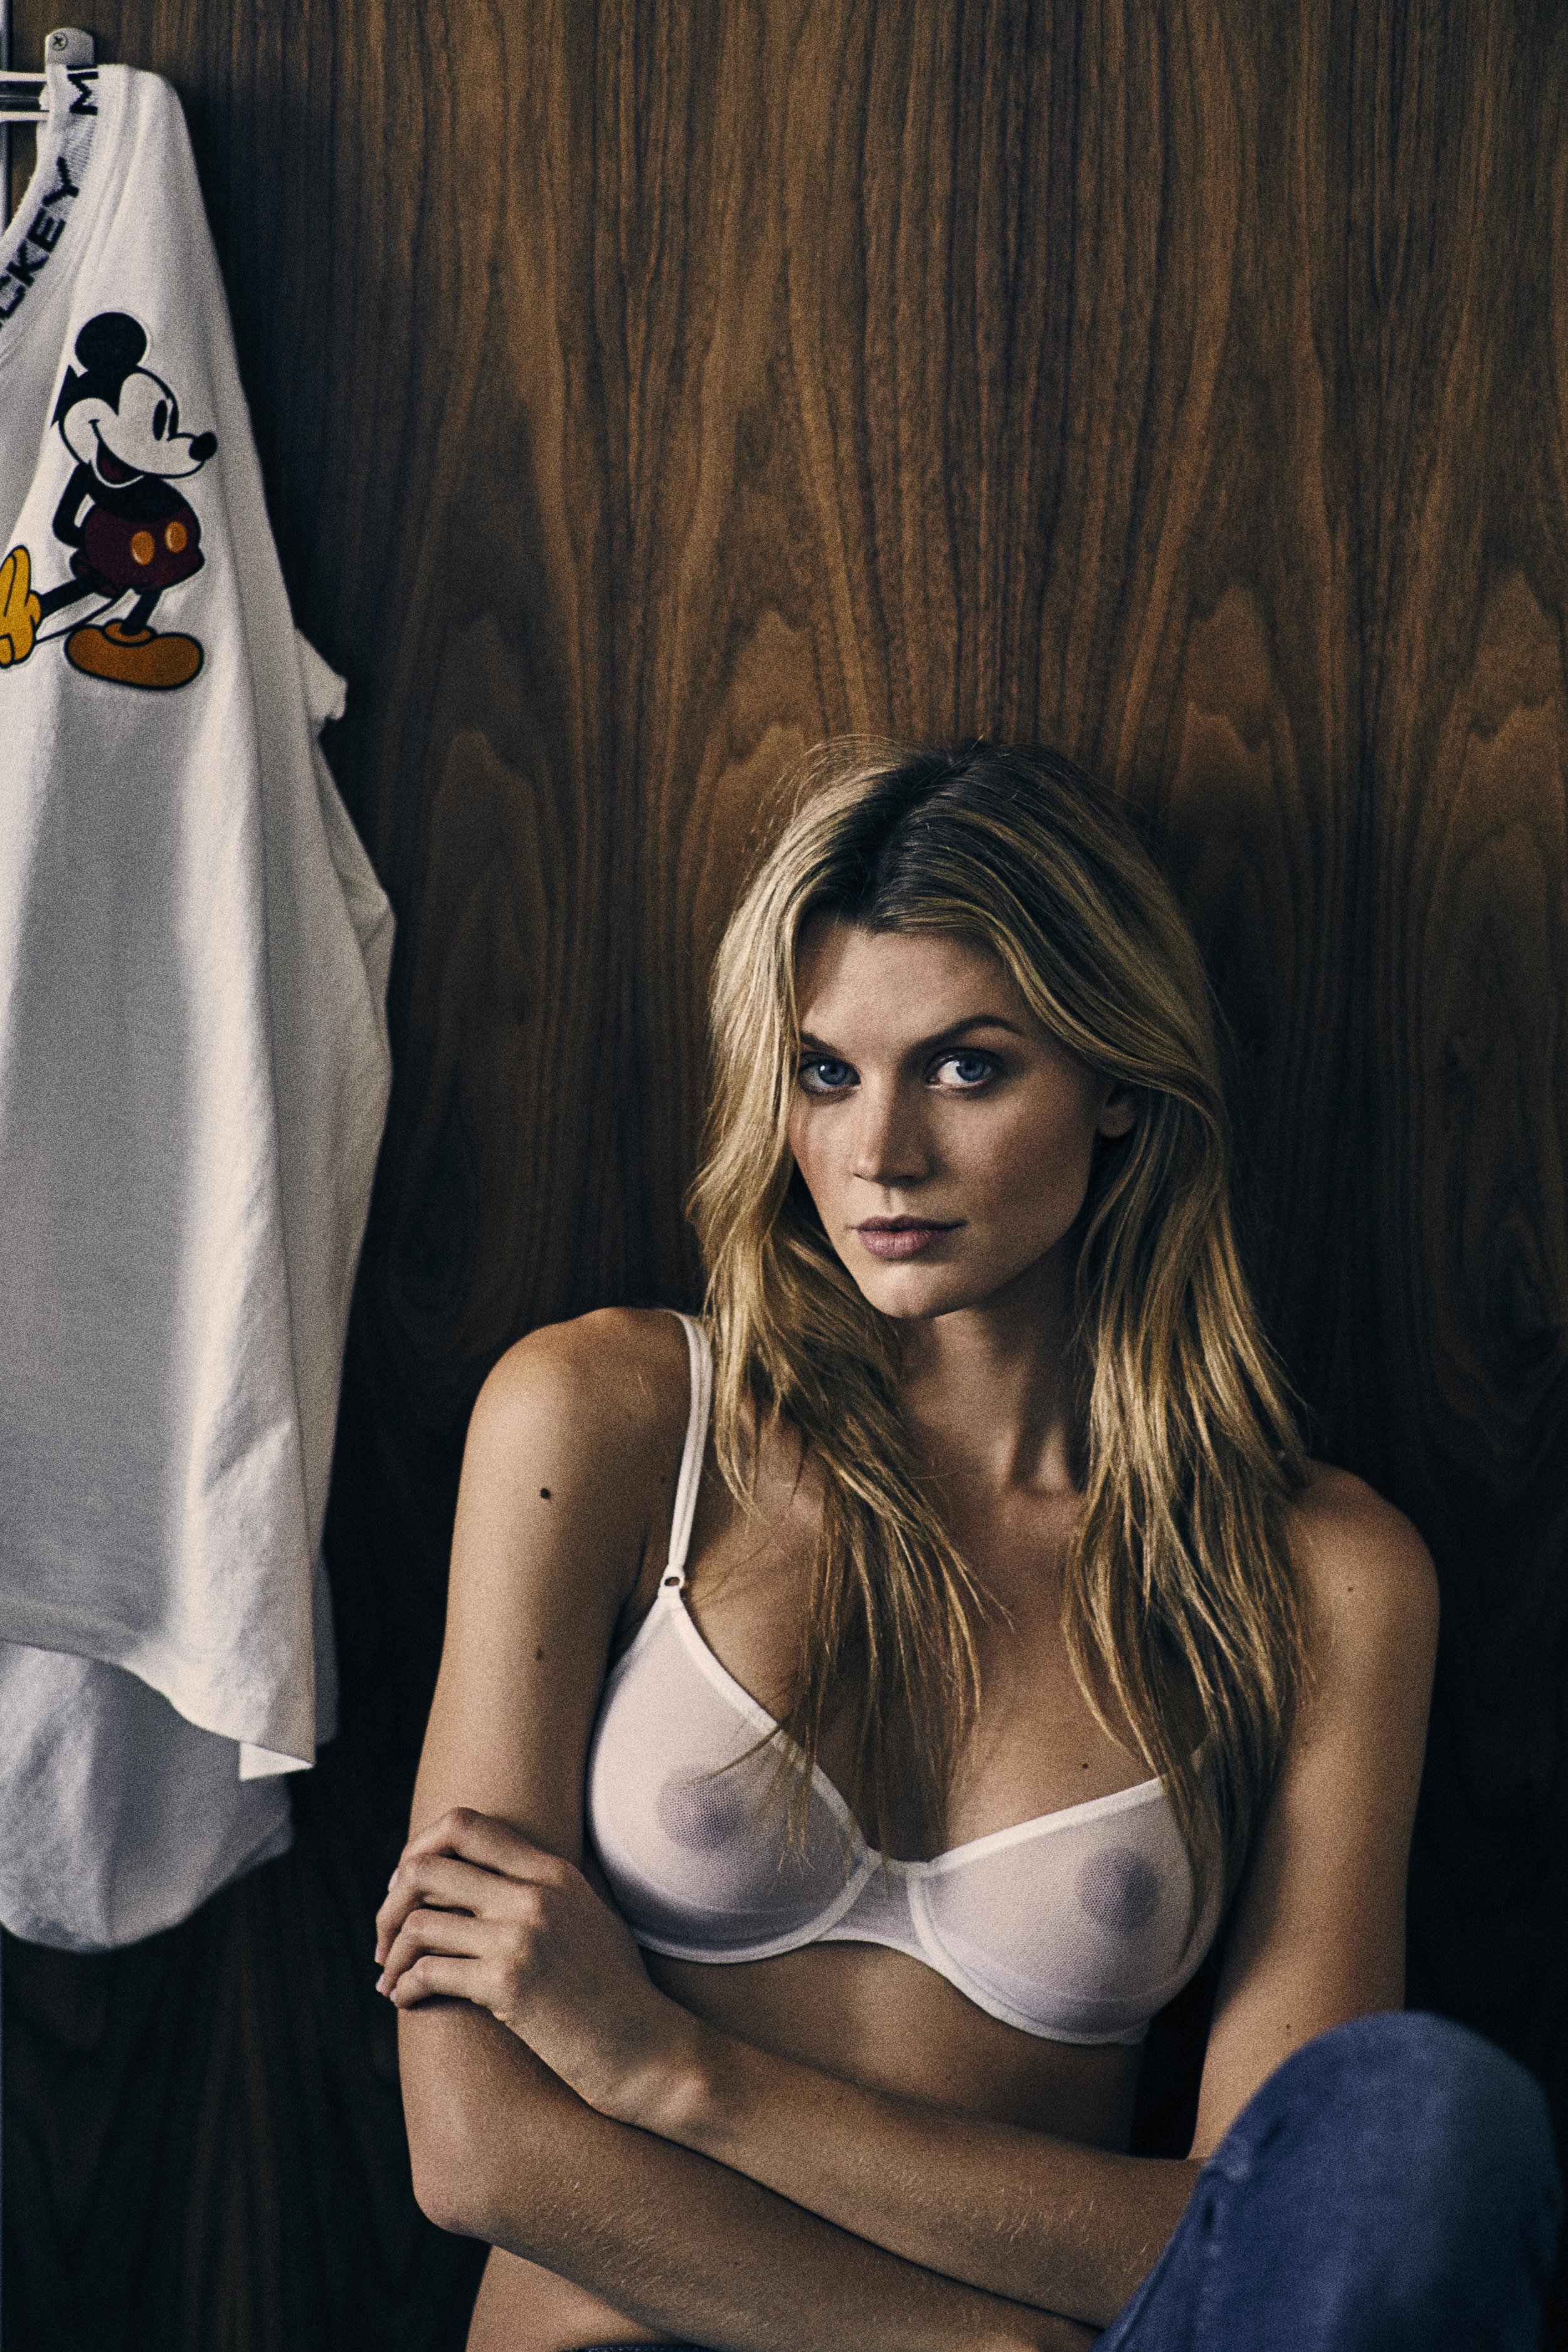 Jayne Moore and WIll Vendramini hotel room series mickey mouse retro T shirt white lingerie